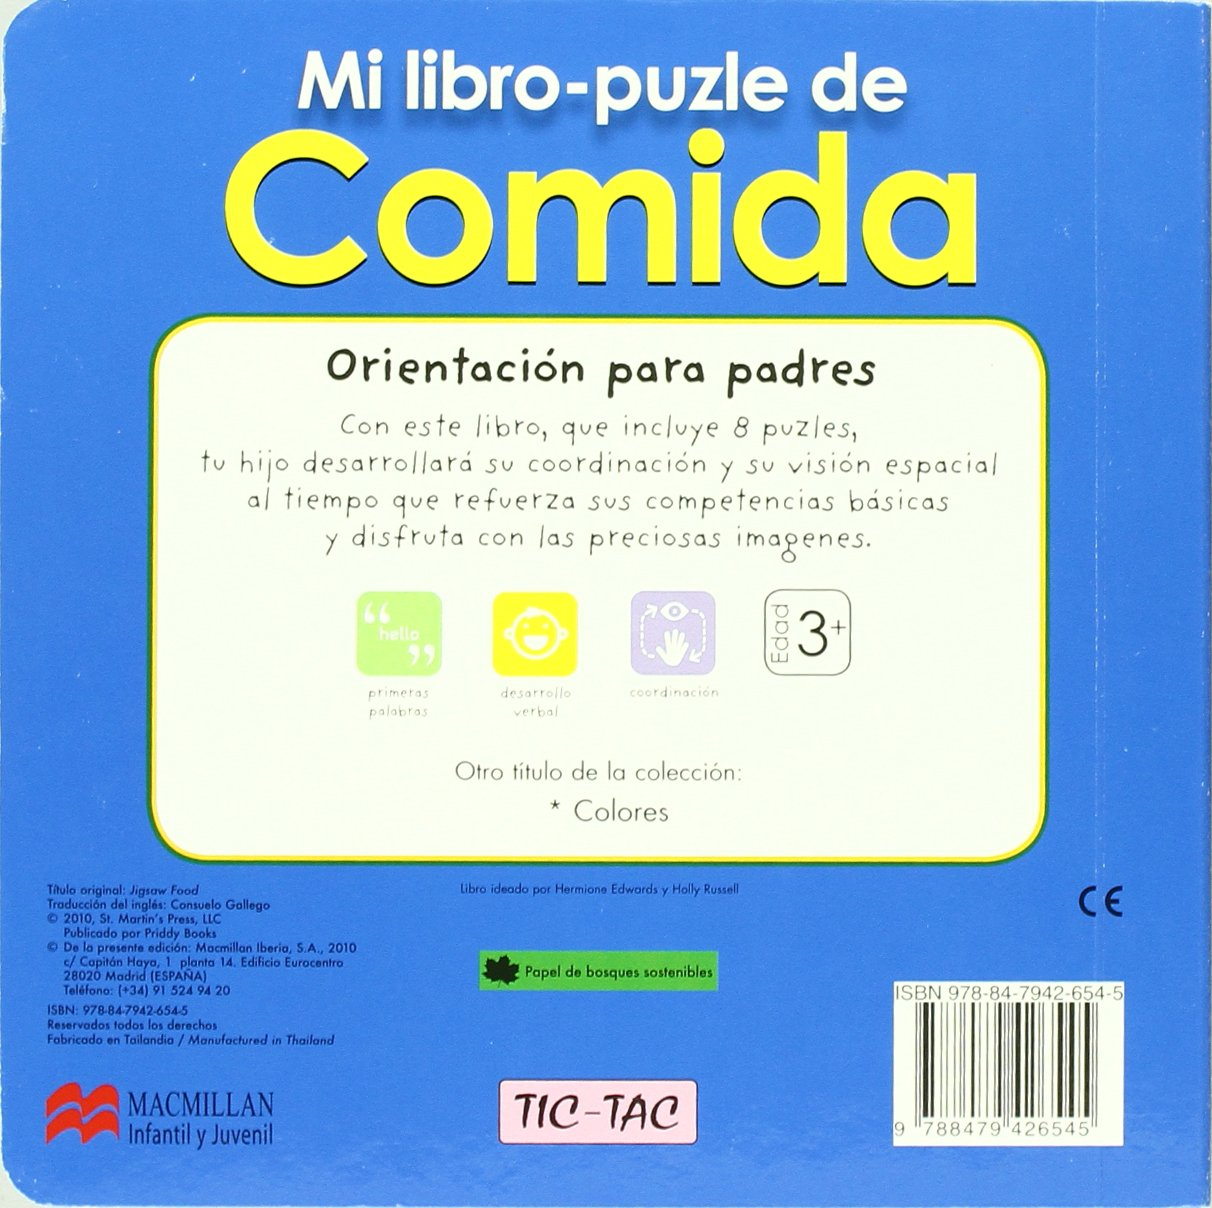 Mi libro-puzle de comida (Spanish Edition): Priddy Books: 9788479426545: Amazon.com: Books